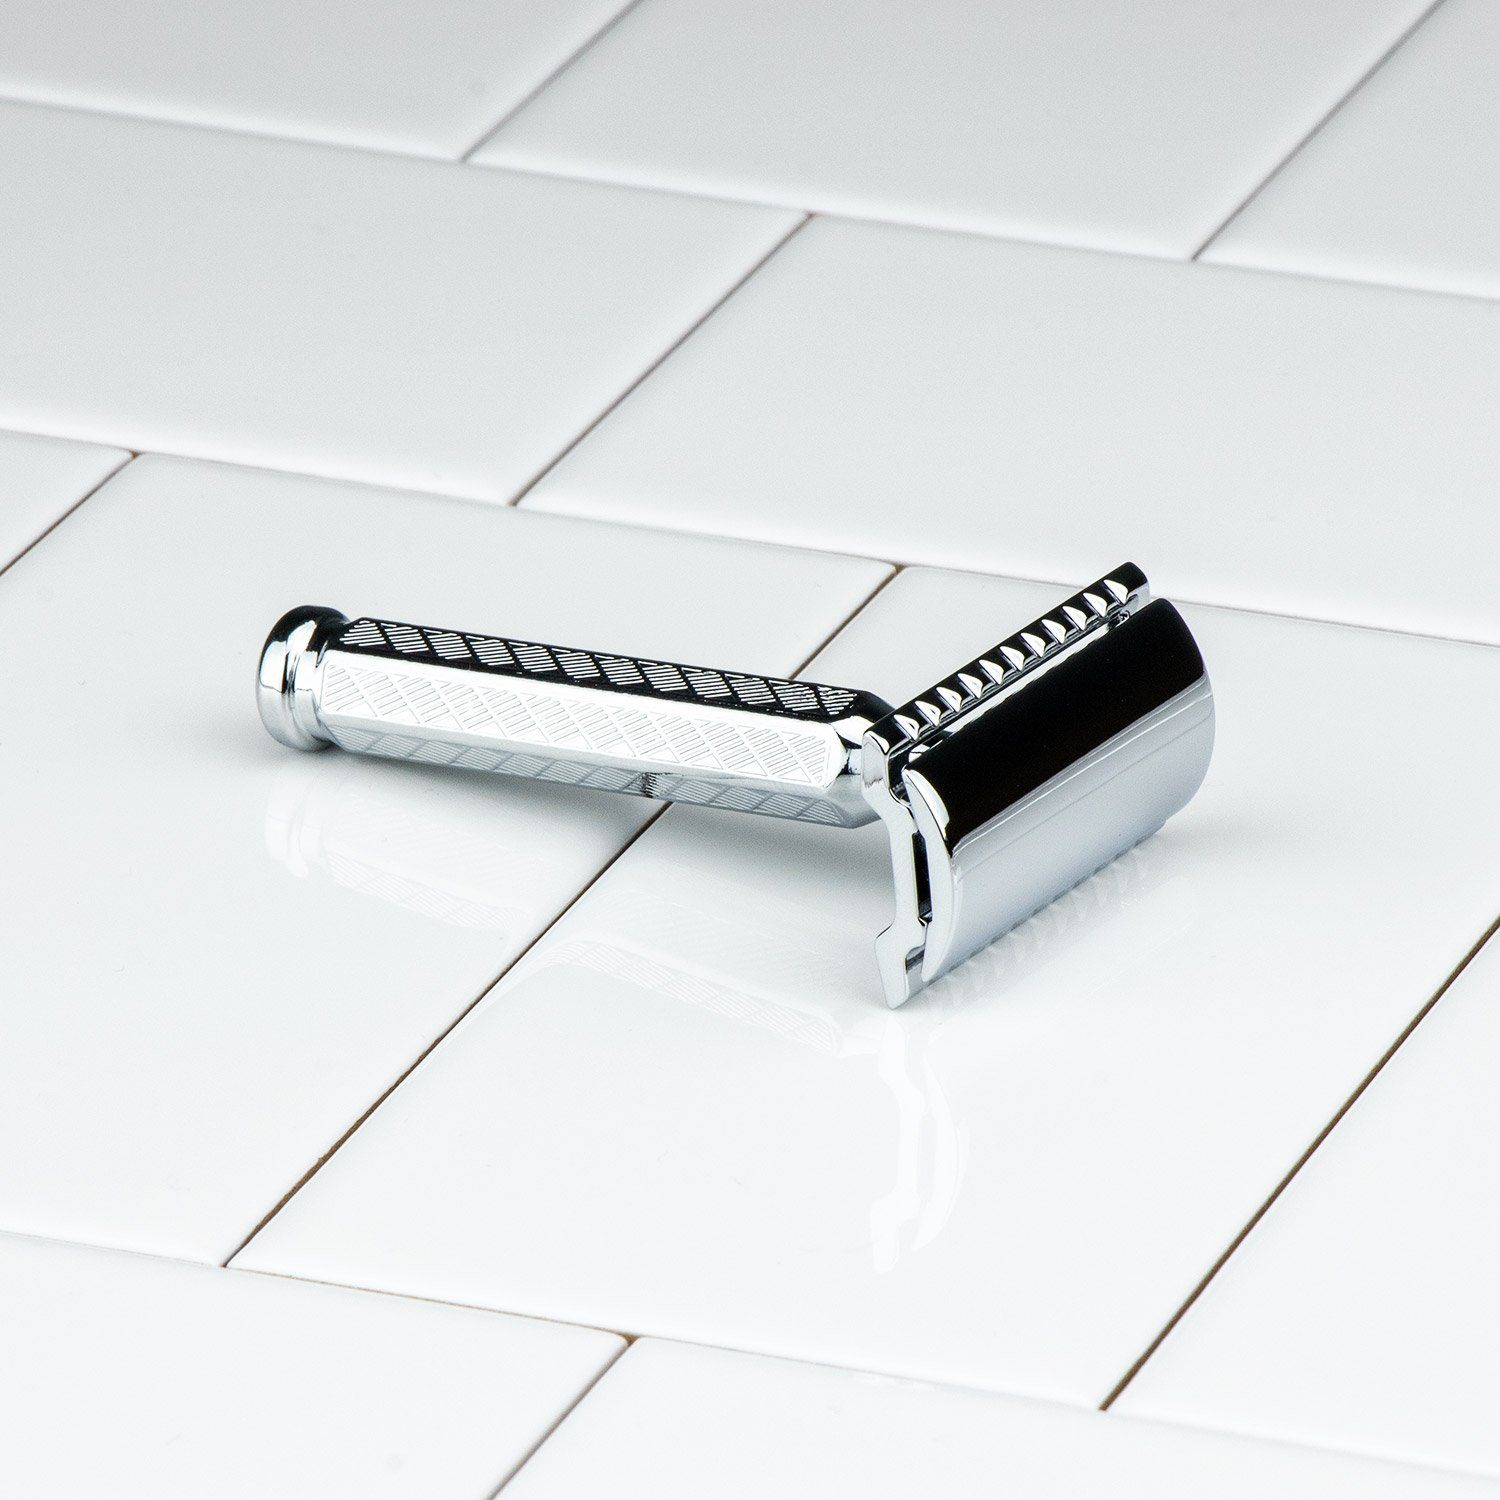 Merkur Double Edge Safety Razor, Straight Cut, Chrome-plated, Etched Handle 1904 Classic 42C